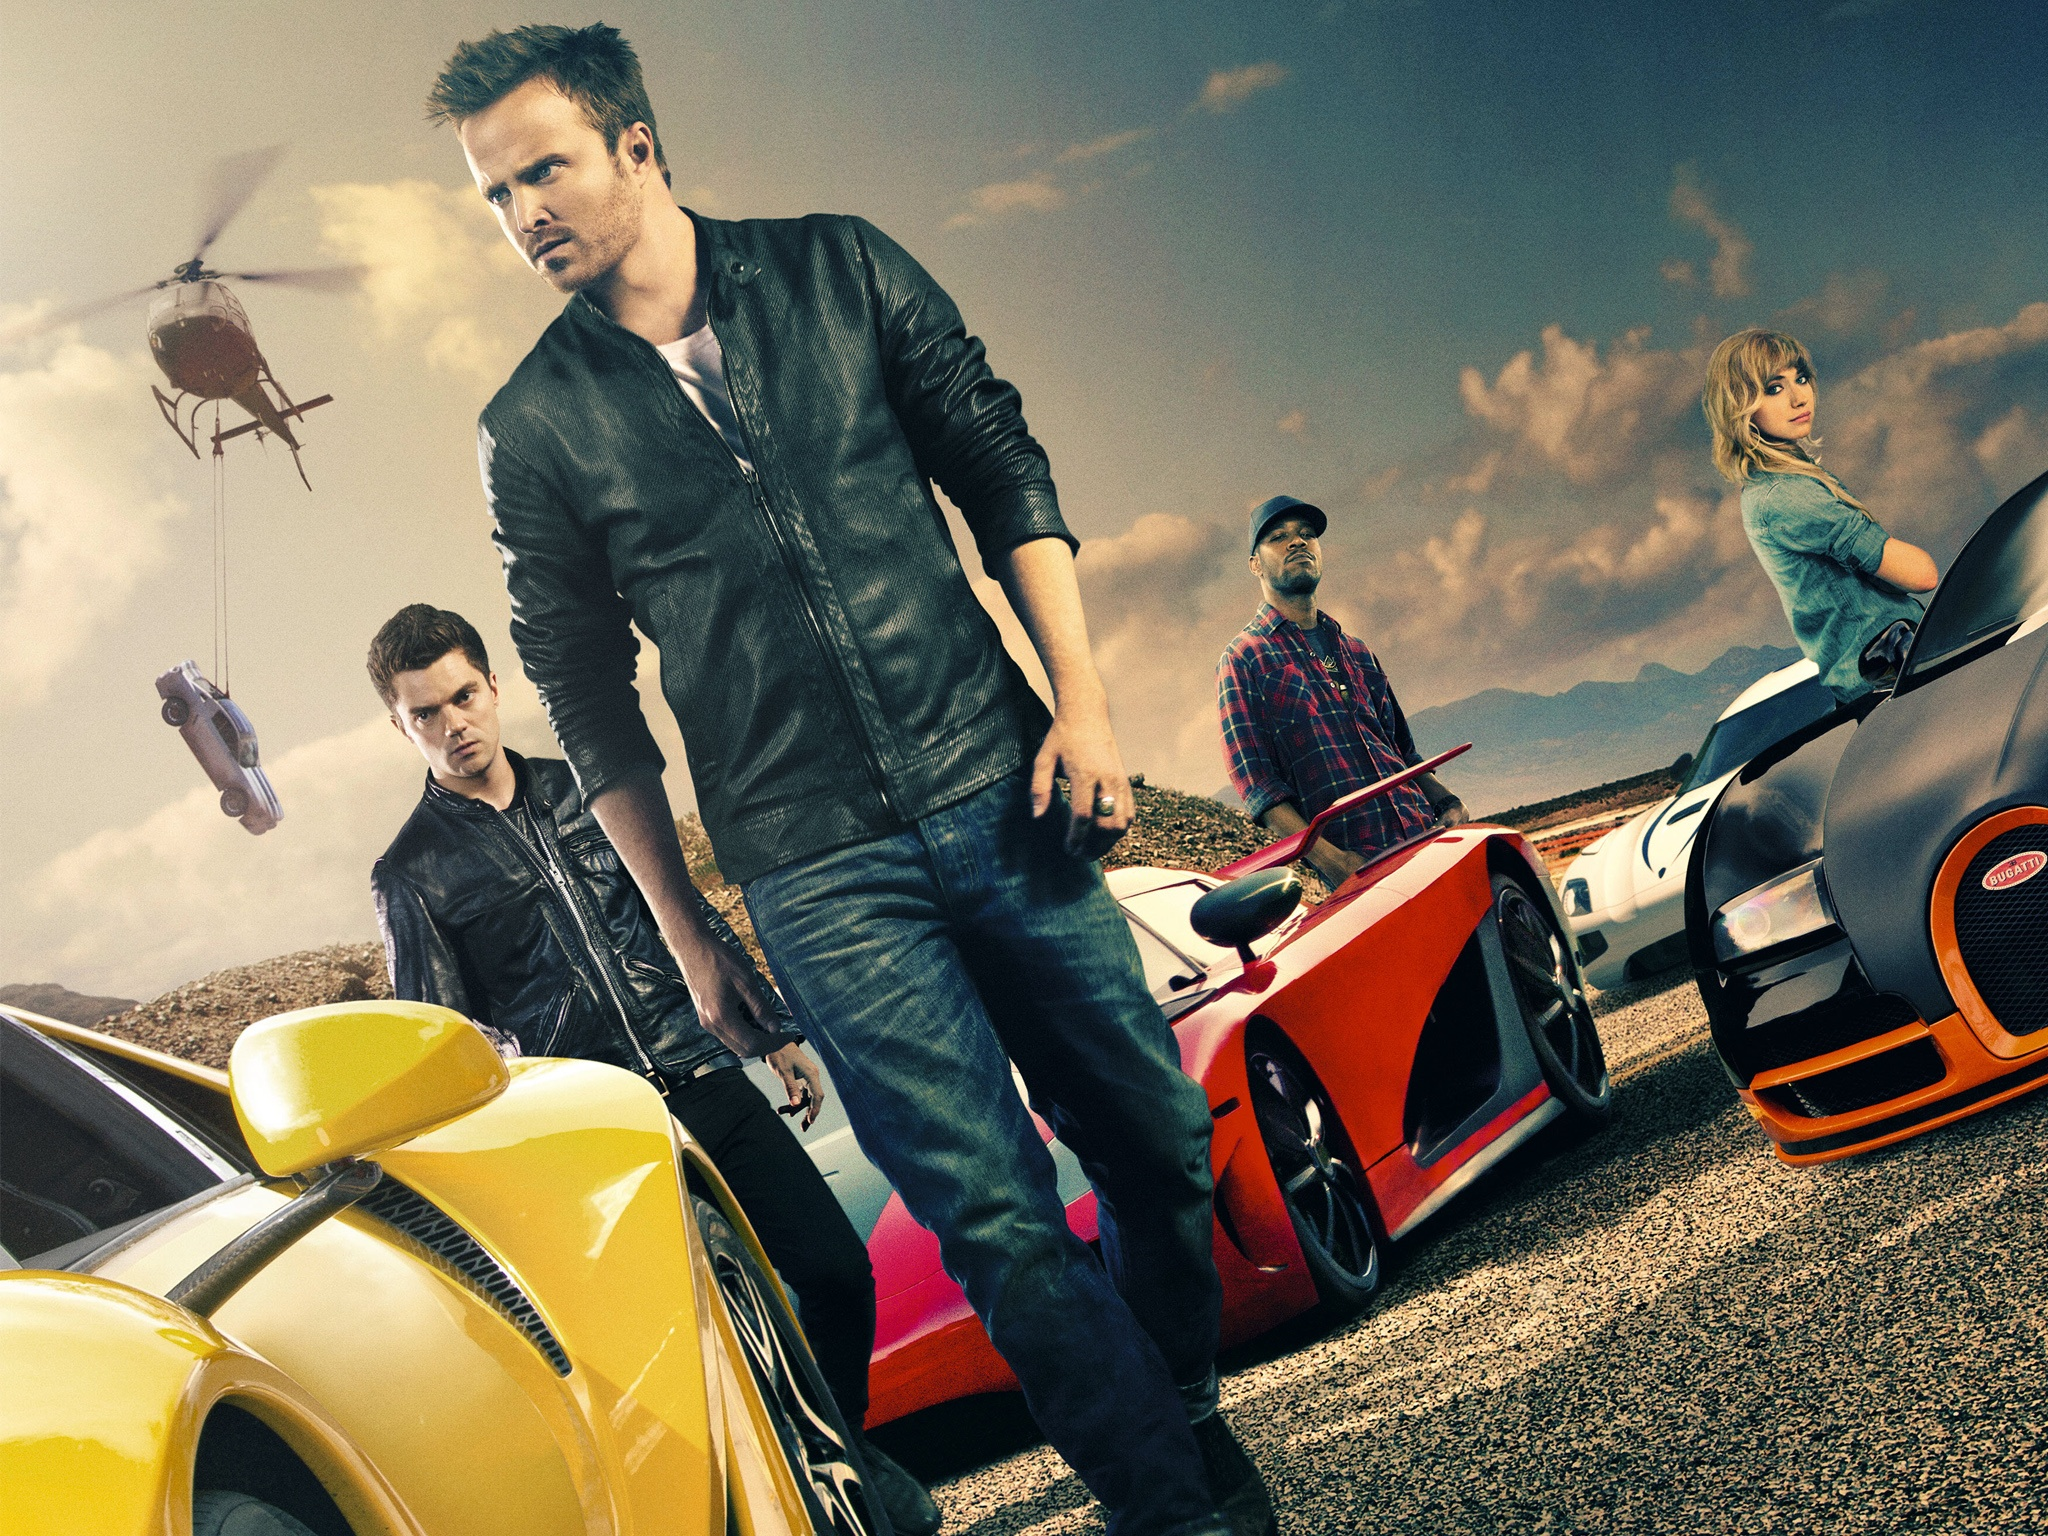 need for speed movie free download